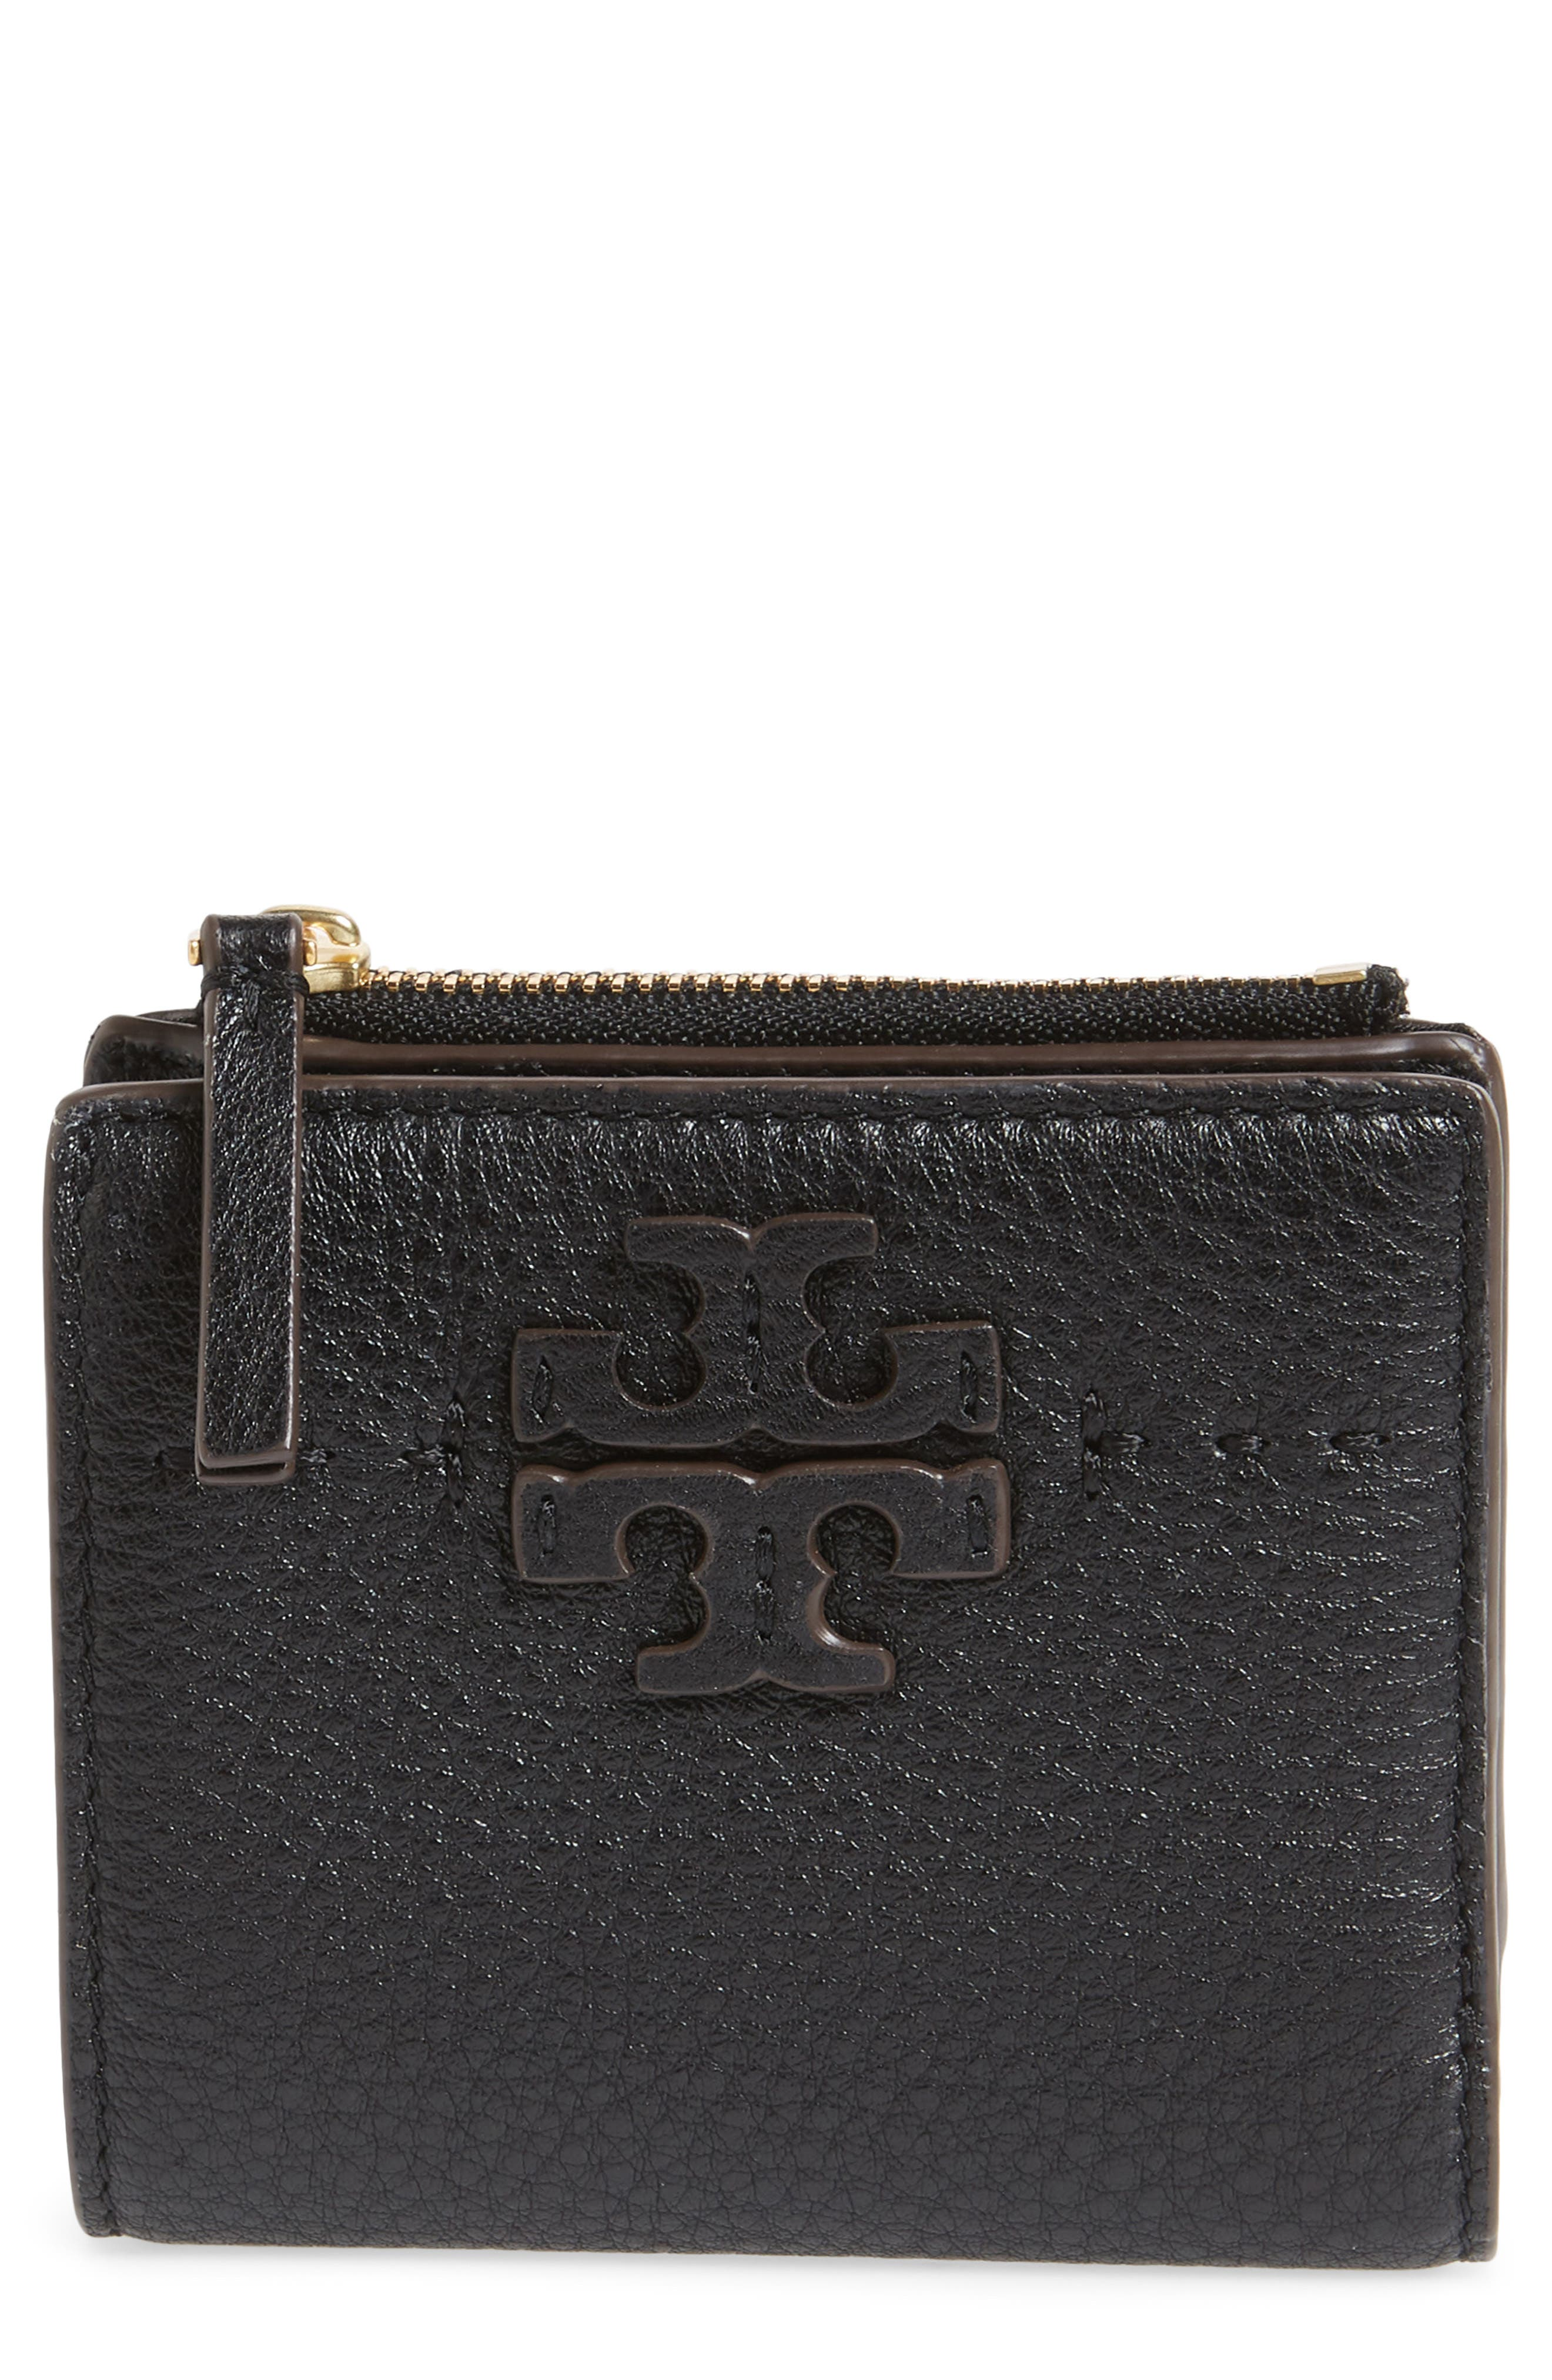 TORY BURCH McGraw Leather Bifold Wallet, Main, color, 001